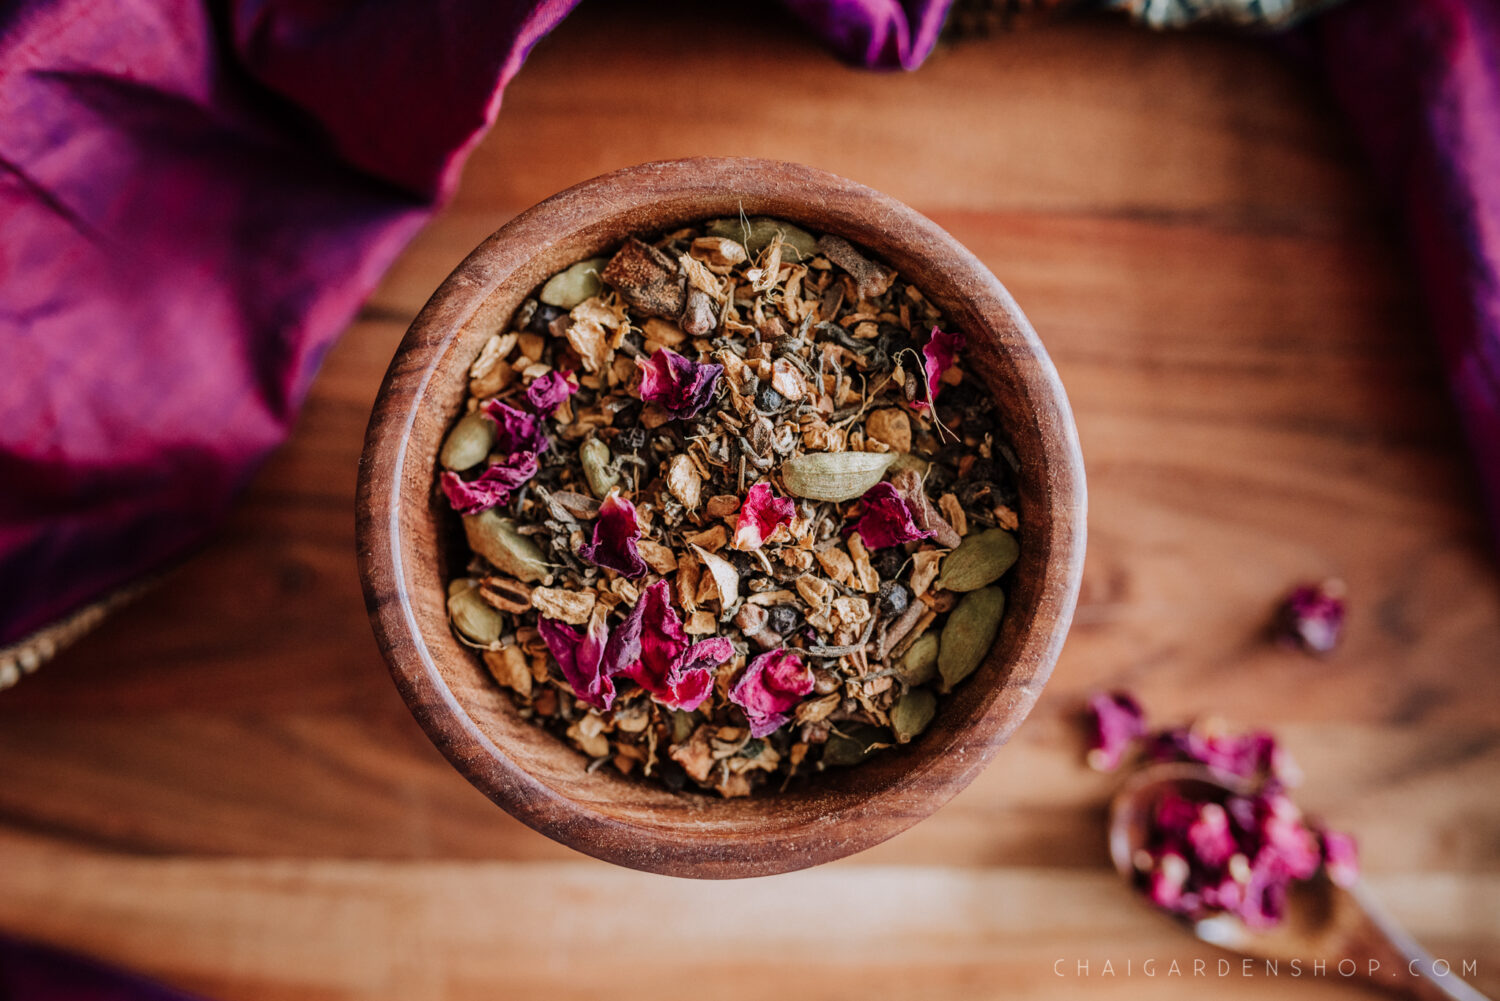 rose petal chai, organic rose petals, organic chai, rose petal tea, chai garden, authentic chai recipe, herbal chai